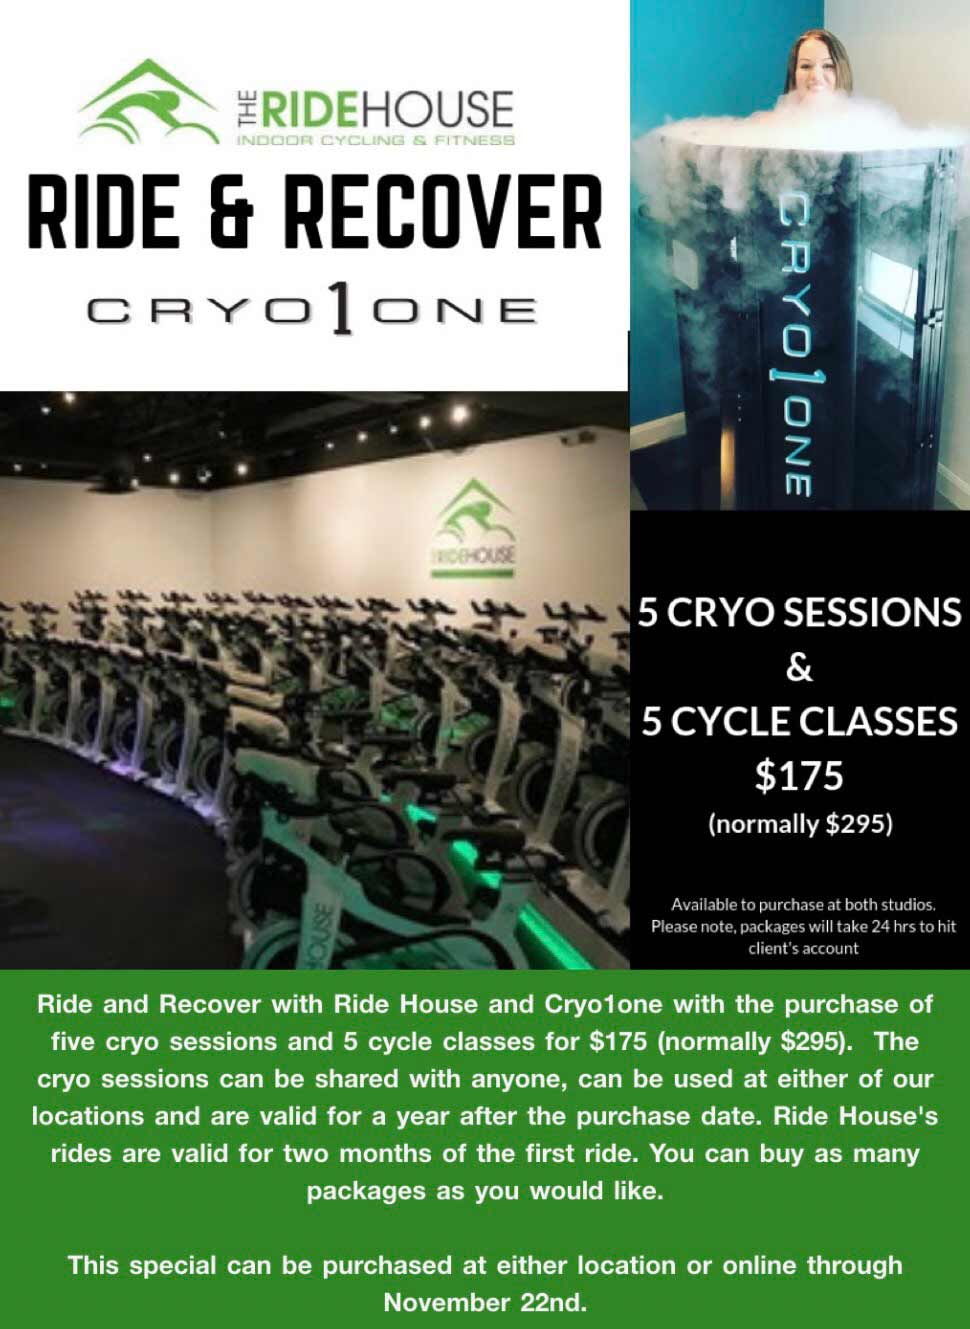 cryo1one-recovery